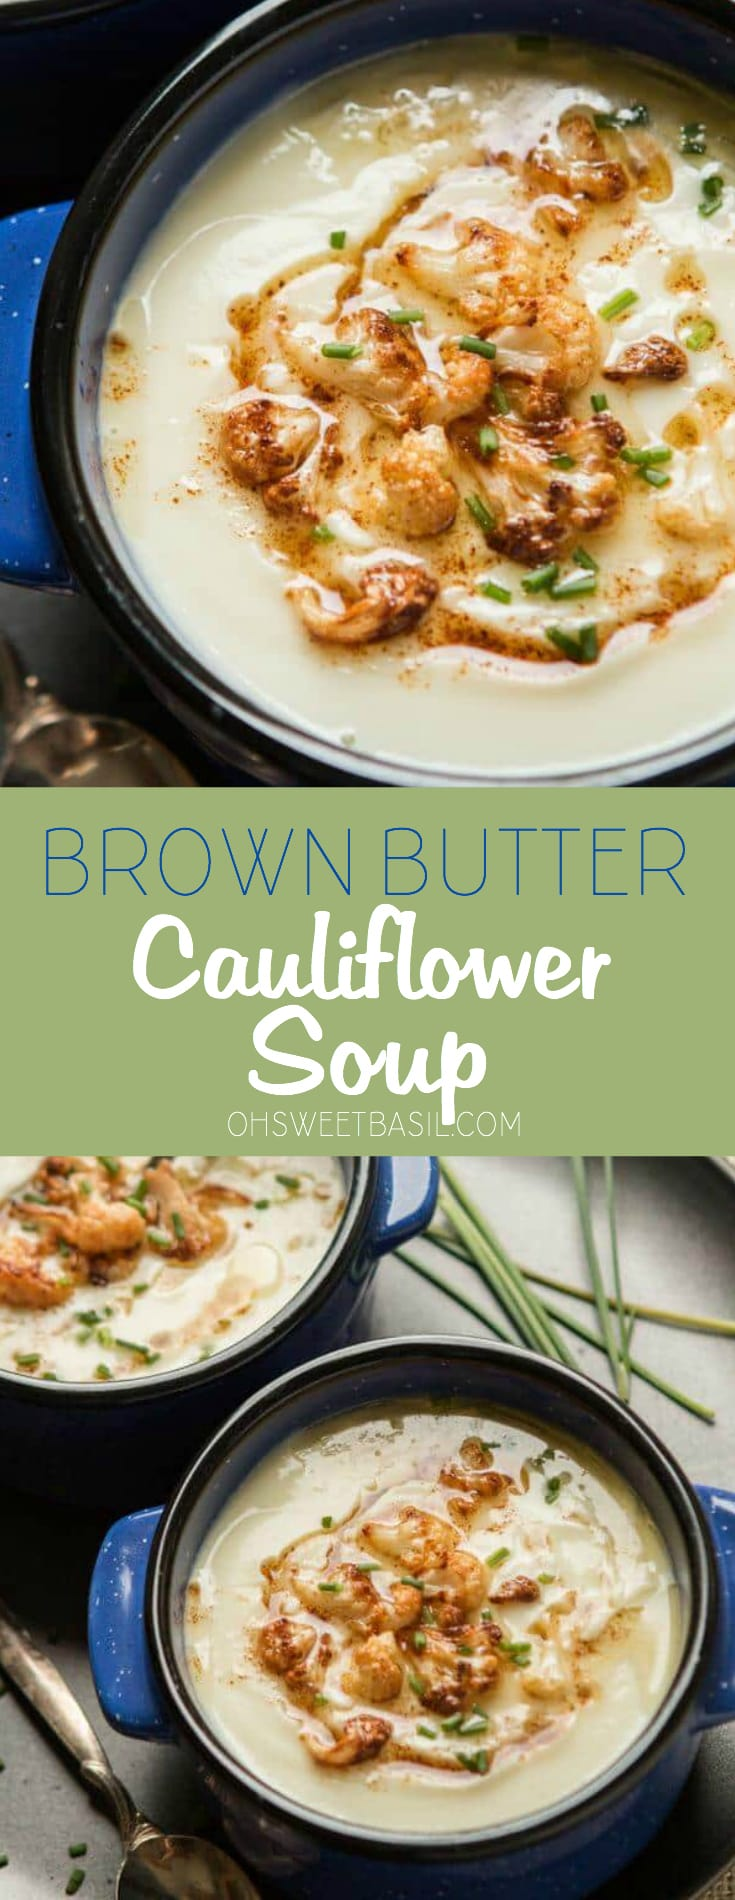 A blue bowl with brown butter cauliflower soup